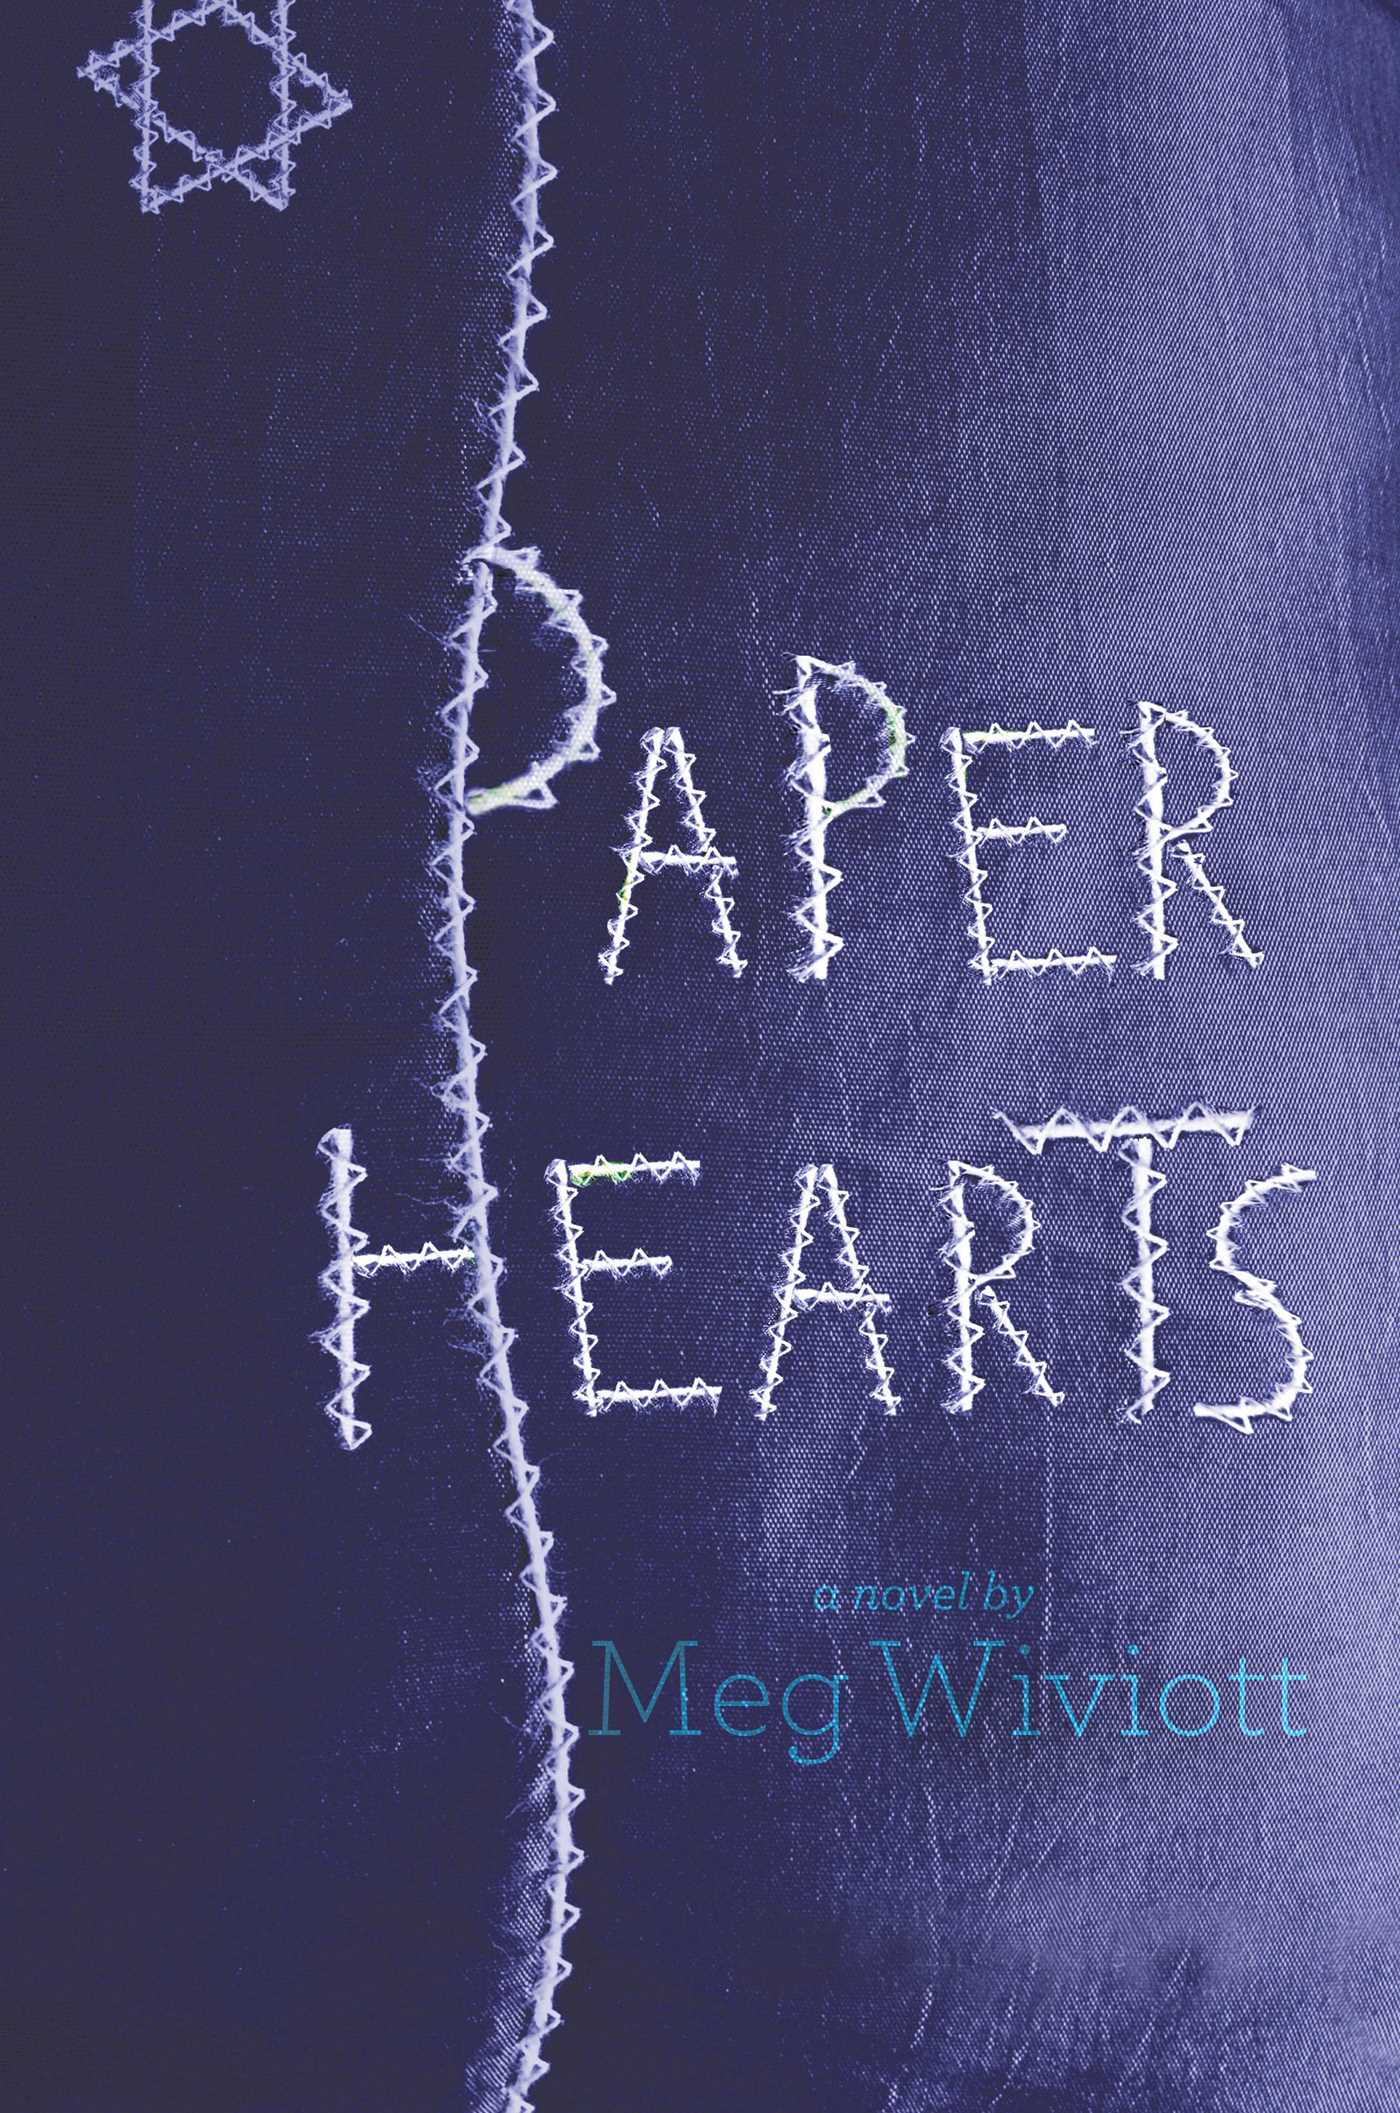 Paper hearts 9781481439855 hr